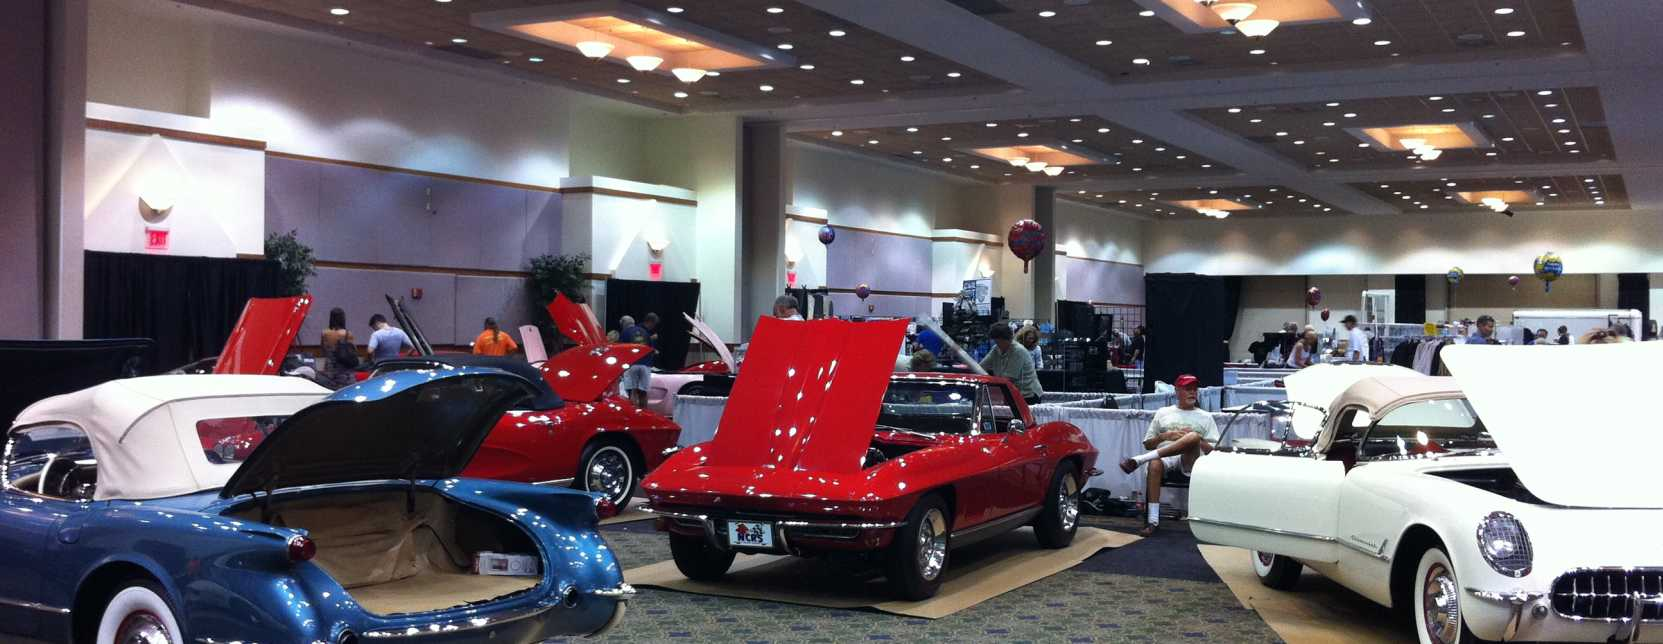 Bowling Green KY Events - Bowling green ky car show 2018